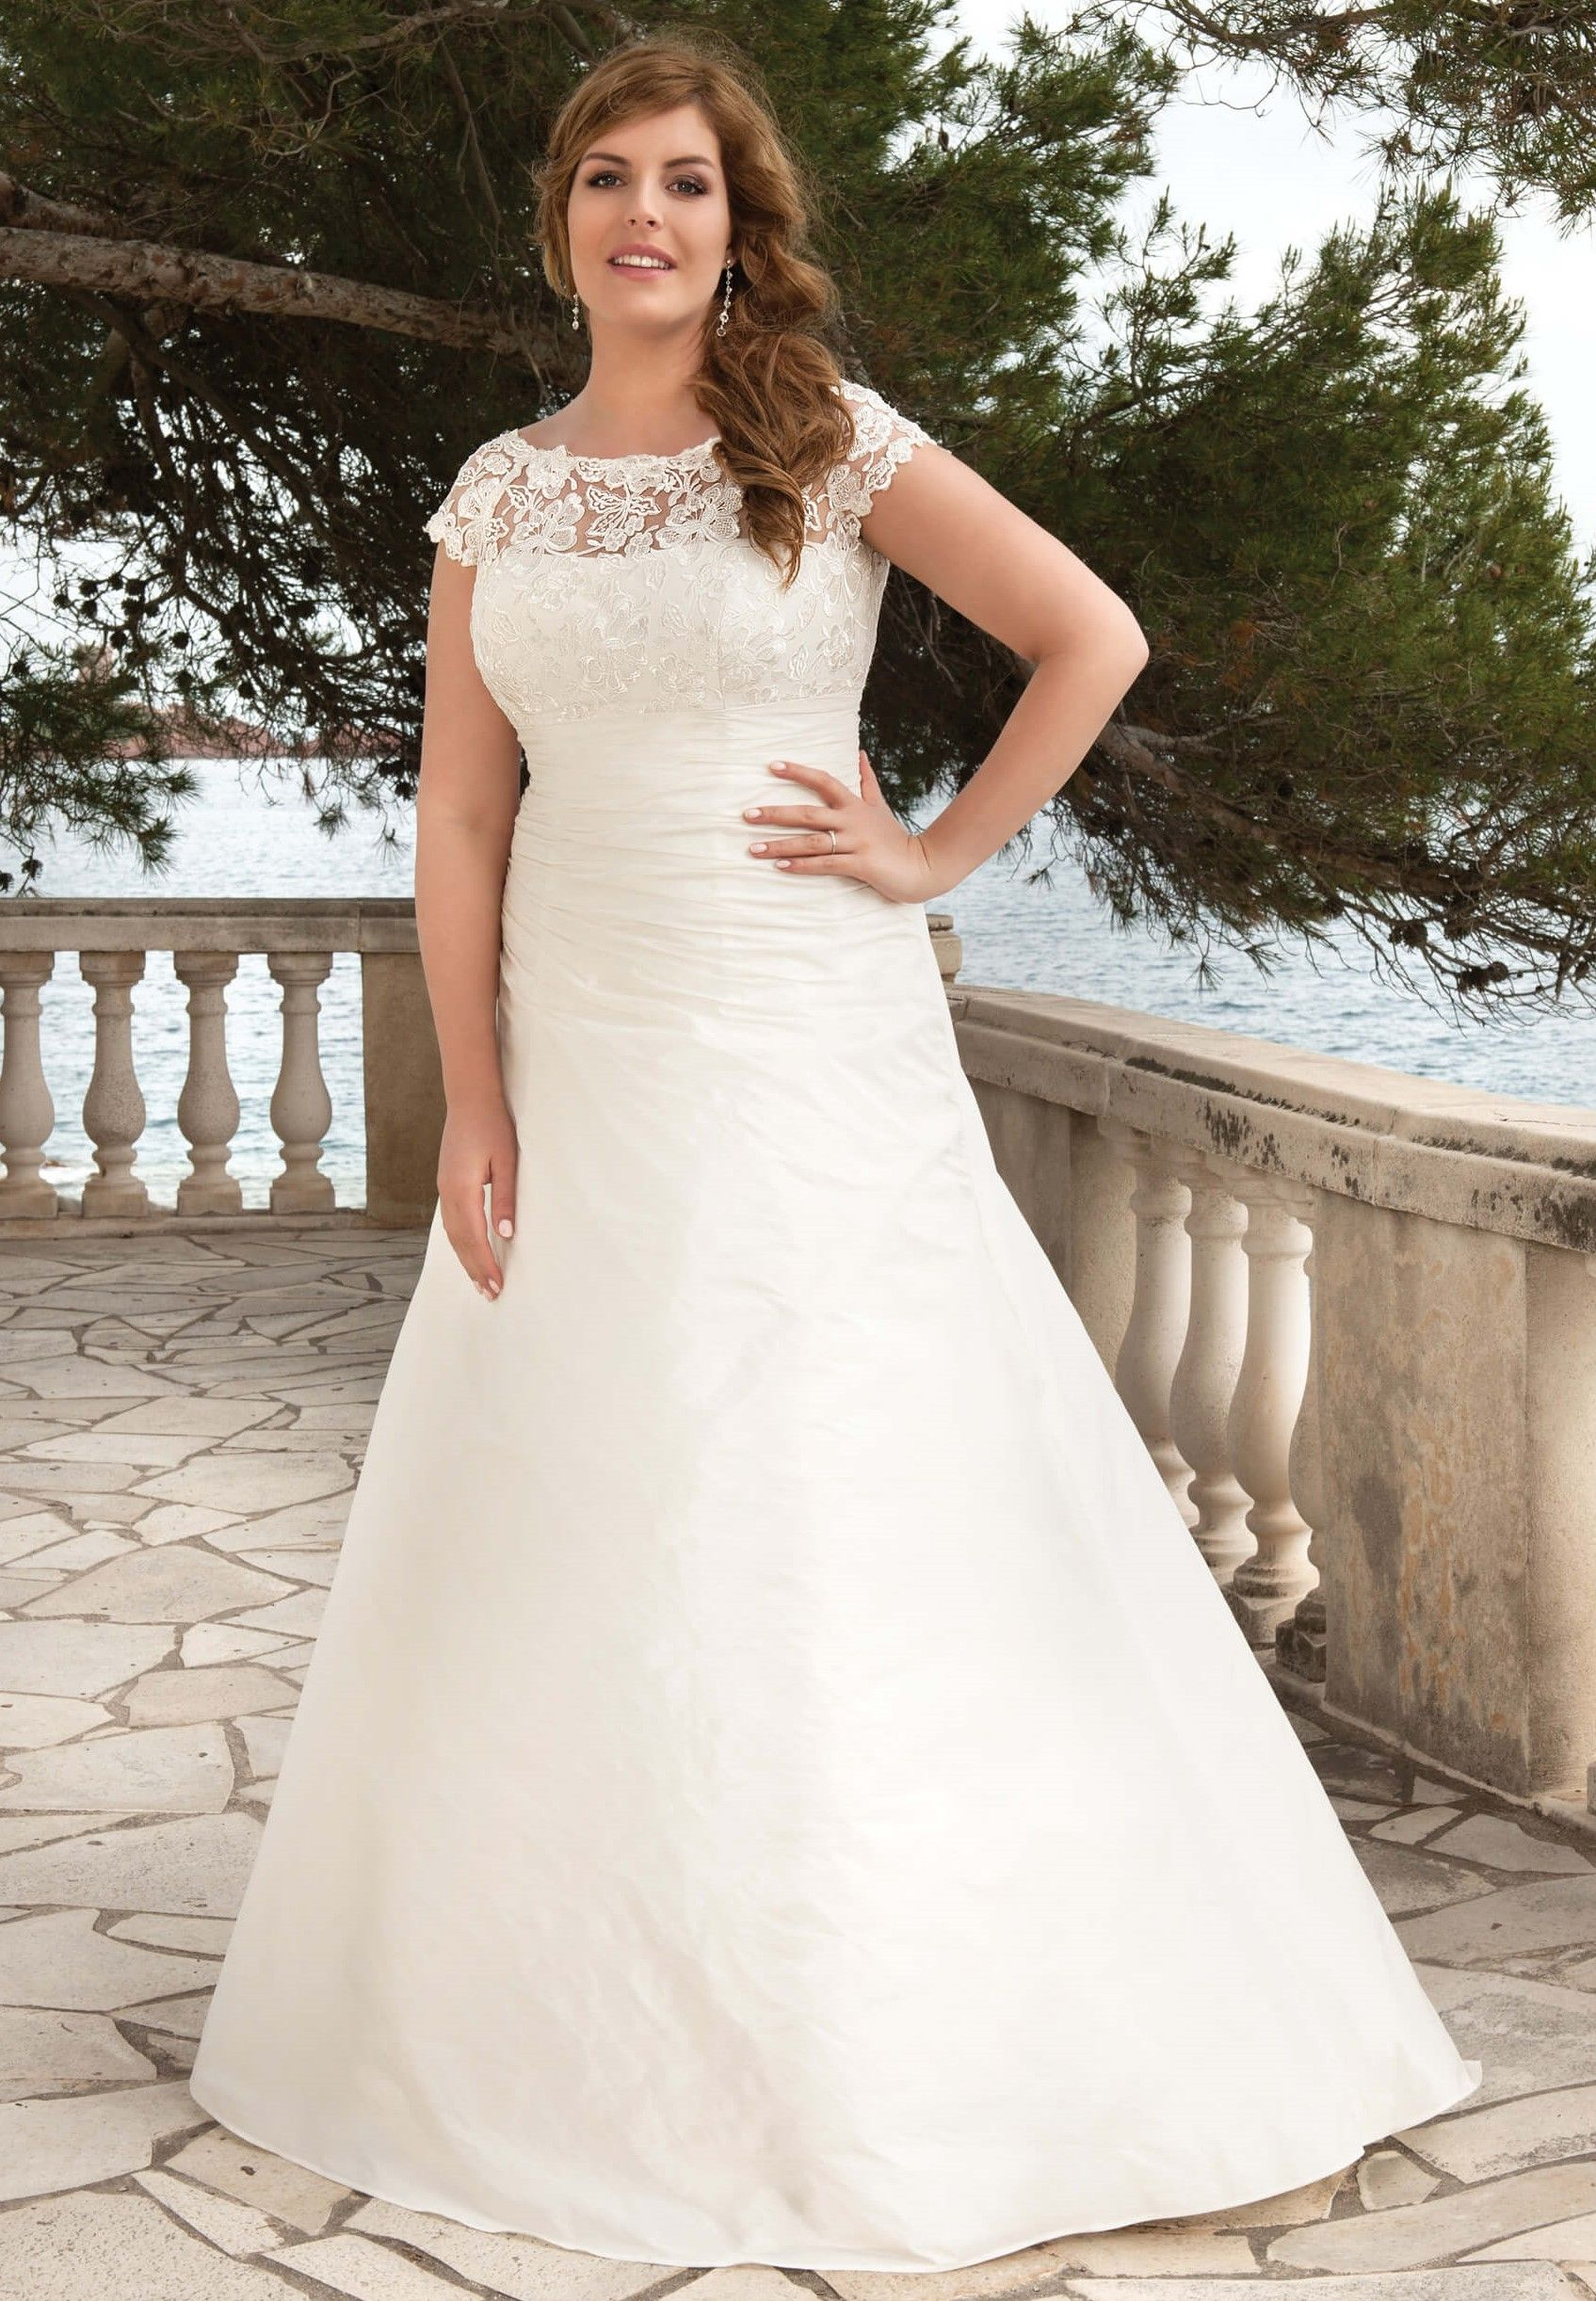 Wedding Dress Trouwjurk Bruidsjurk Plus Size Wedding Curves Bruiloft ...